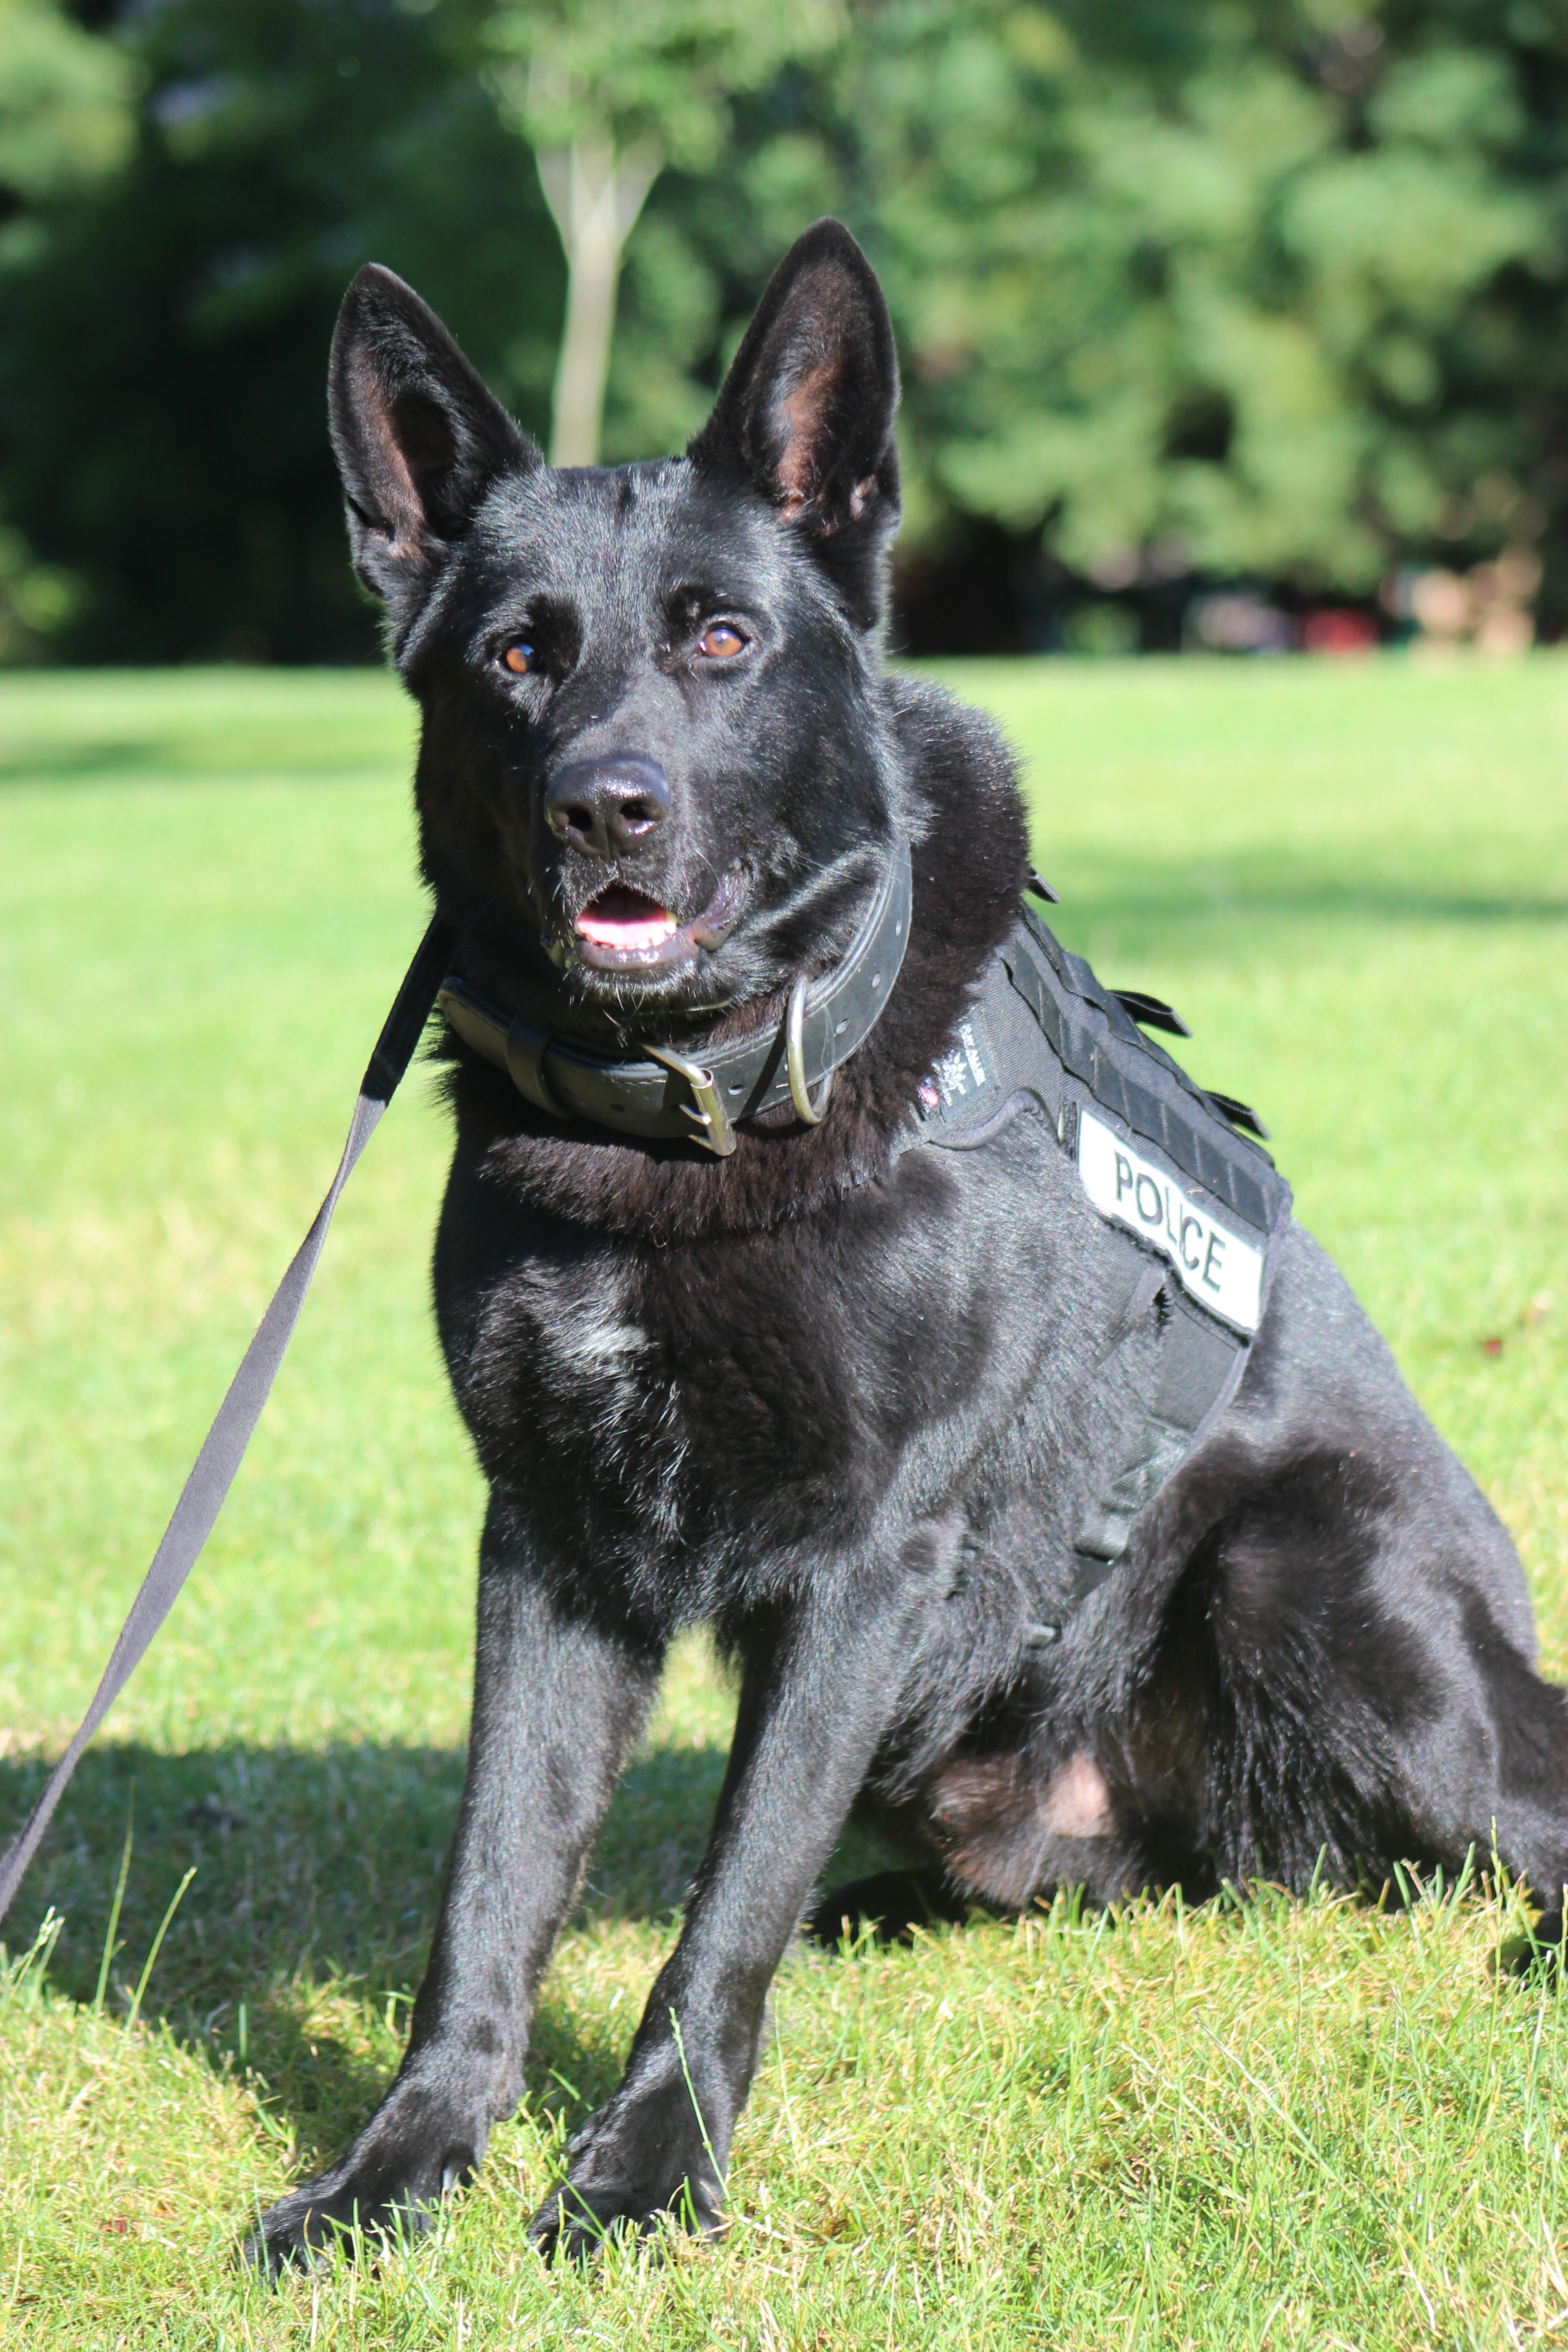 K9 Axel tracks Suspects Fleeing from Stolen vehicle (Photo) featured image